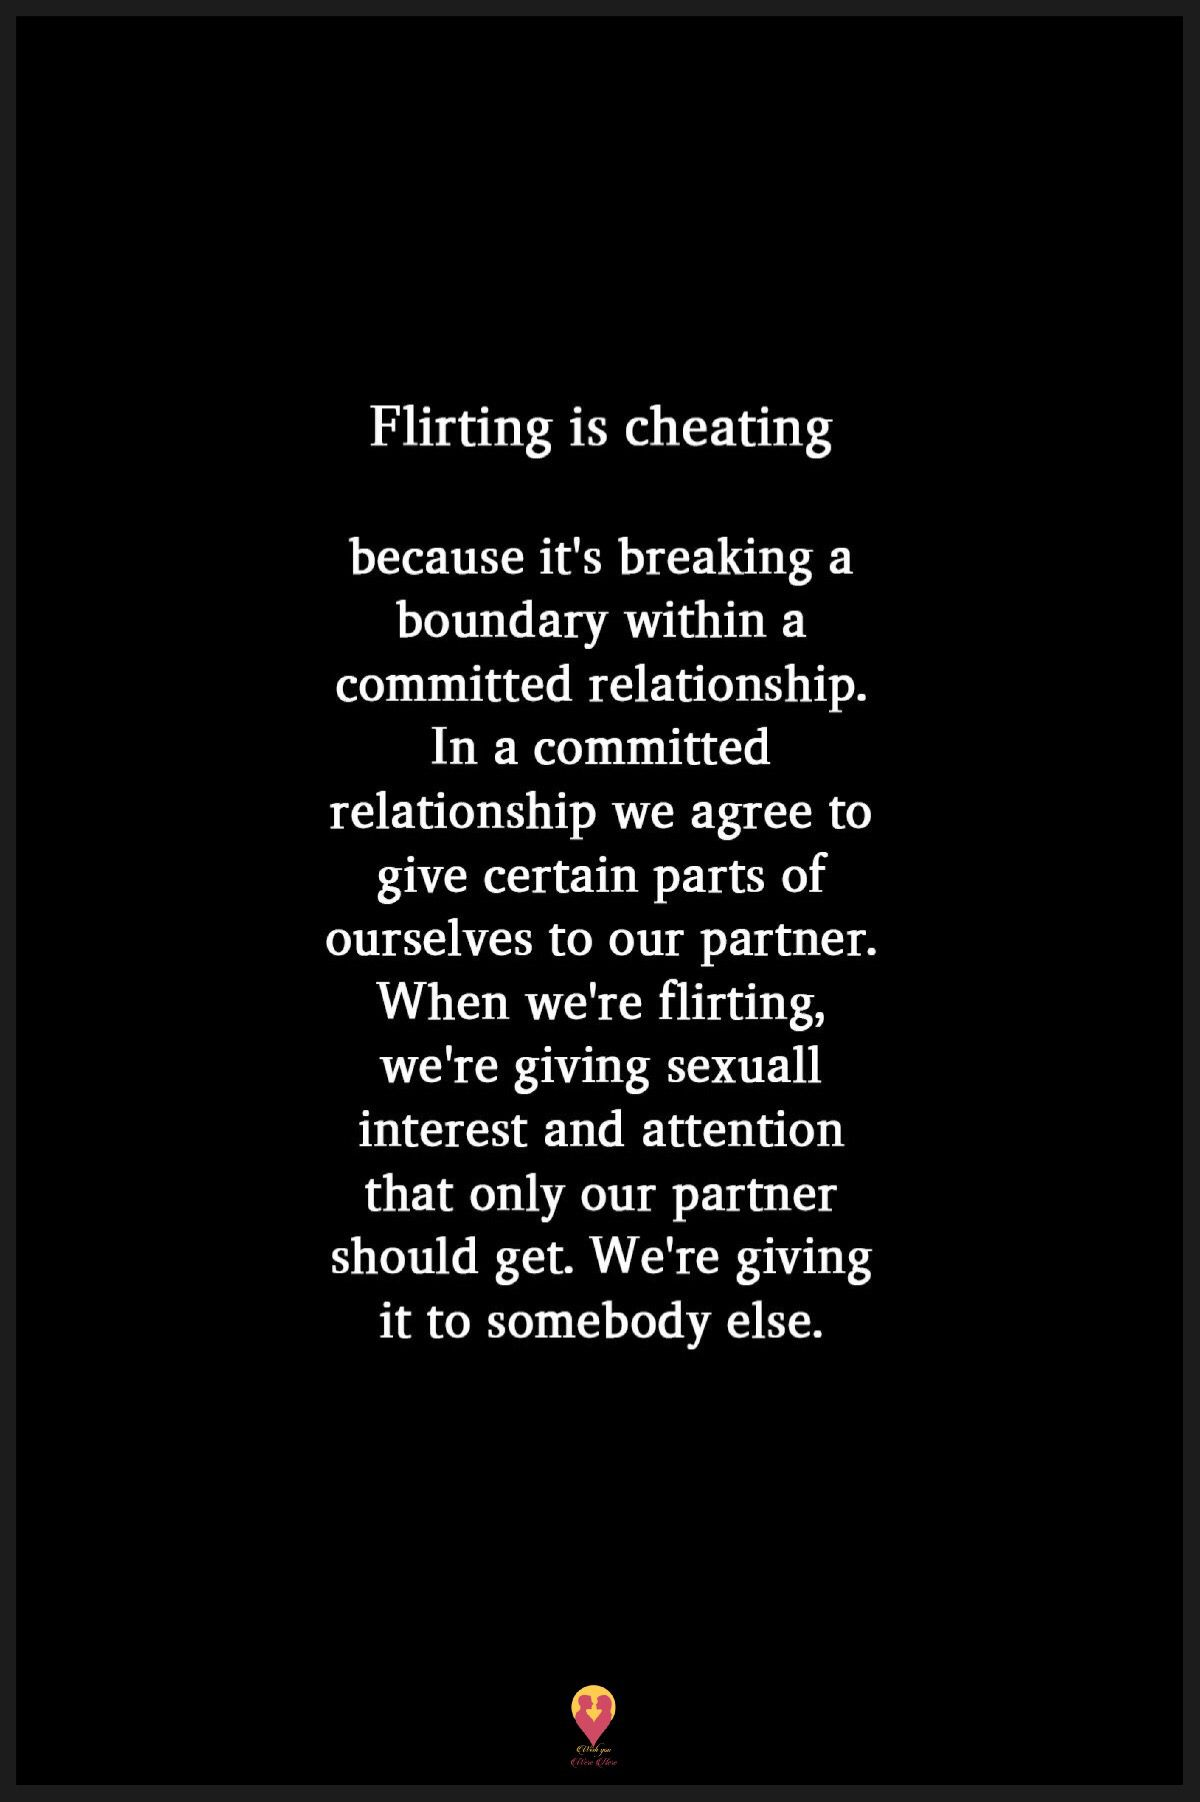 flirting vs cheating committed relationship quotes free printable images